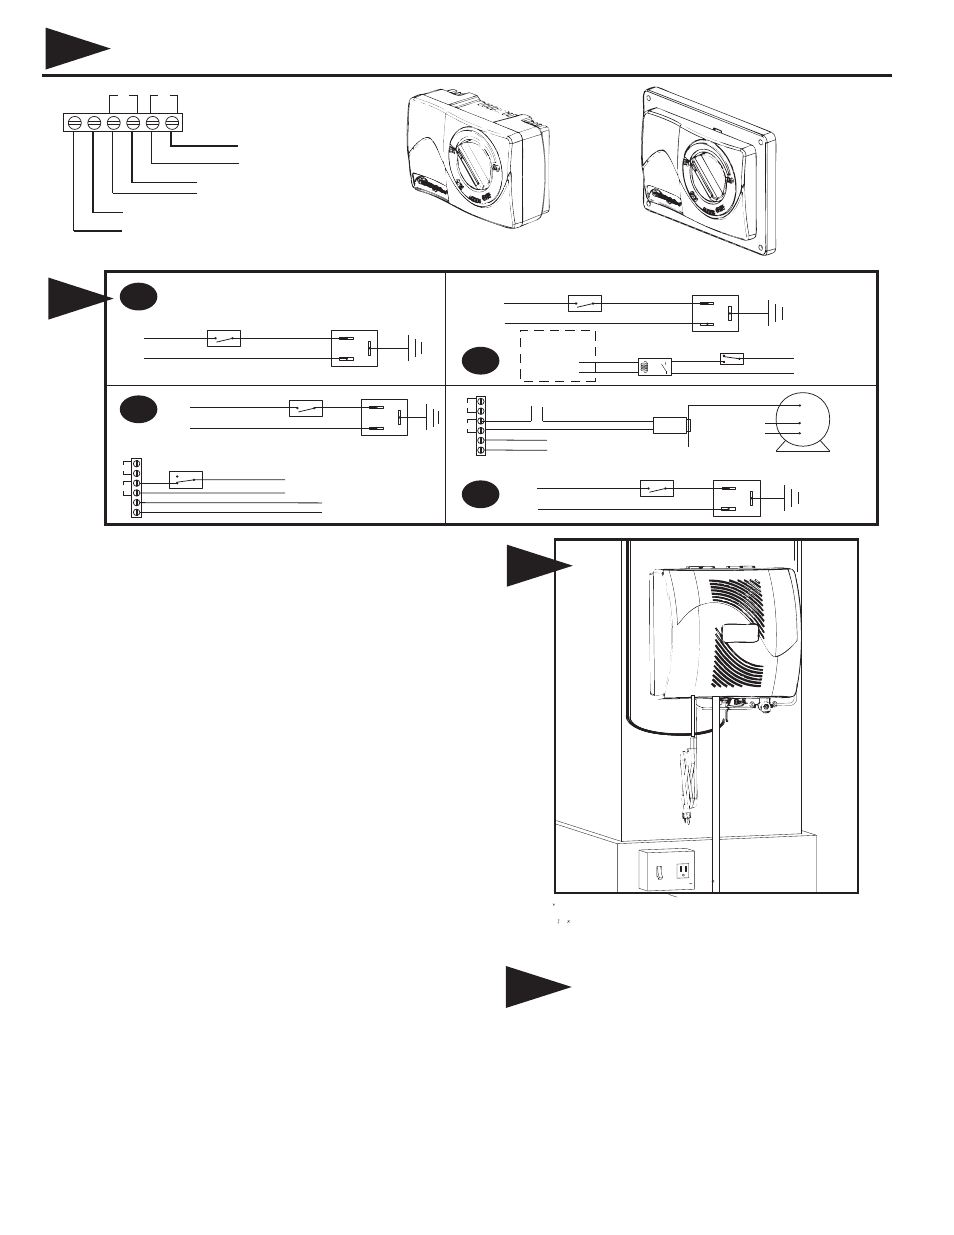 hight resolution of instructions for wiring humidifier gfx3 electronic humidistat 6a 6c 6b generalaire 1000 series elite manuel d utilisation page 2 12